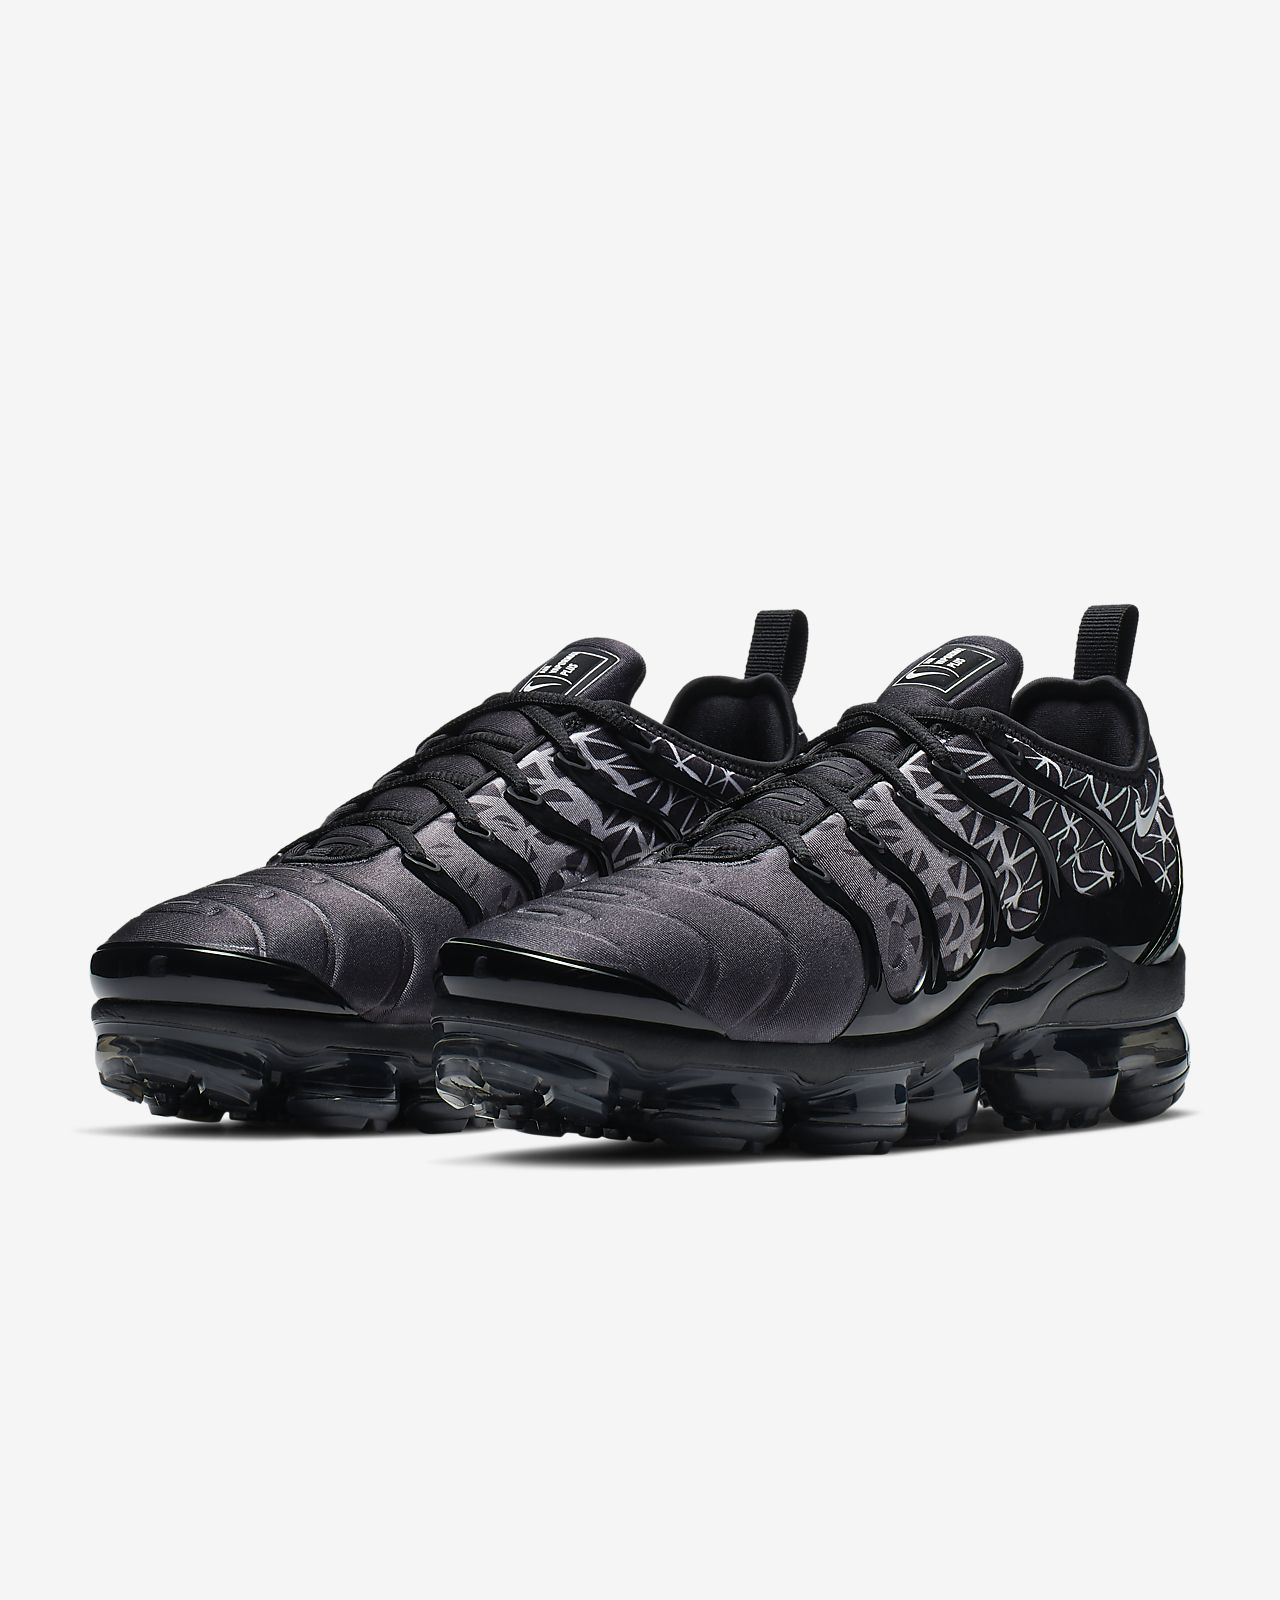 super popular dcc6a c1f4d ... Nike Air VaporMax Plus Men s Shoe